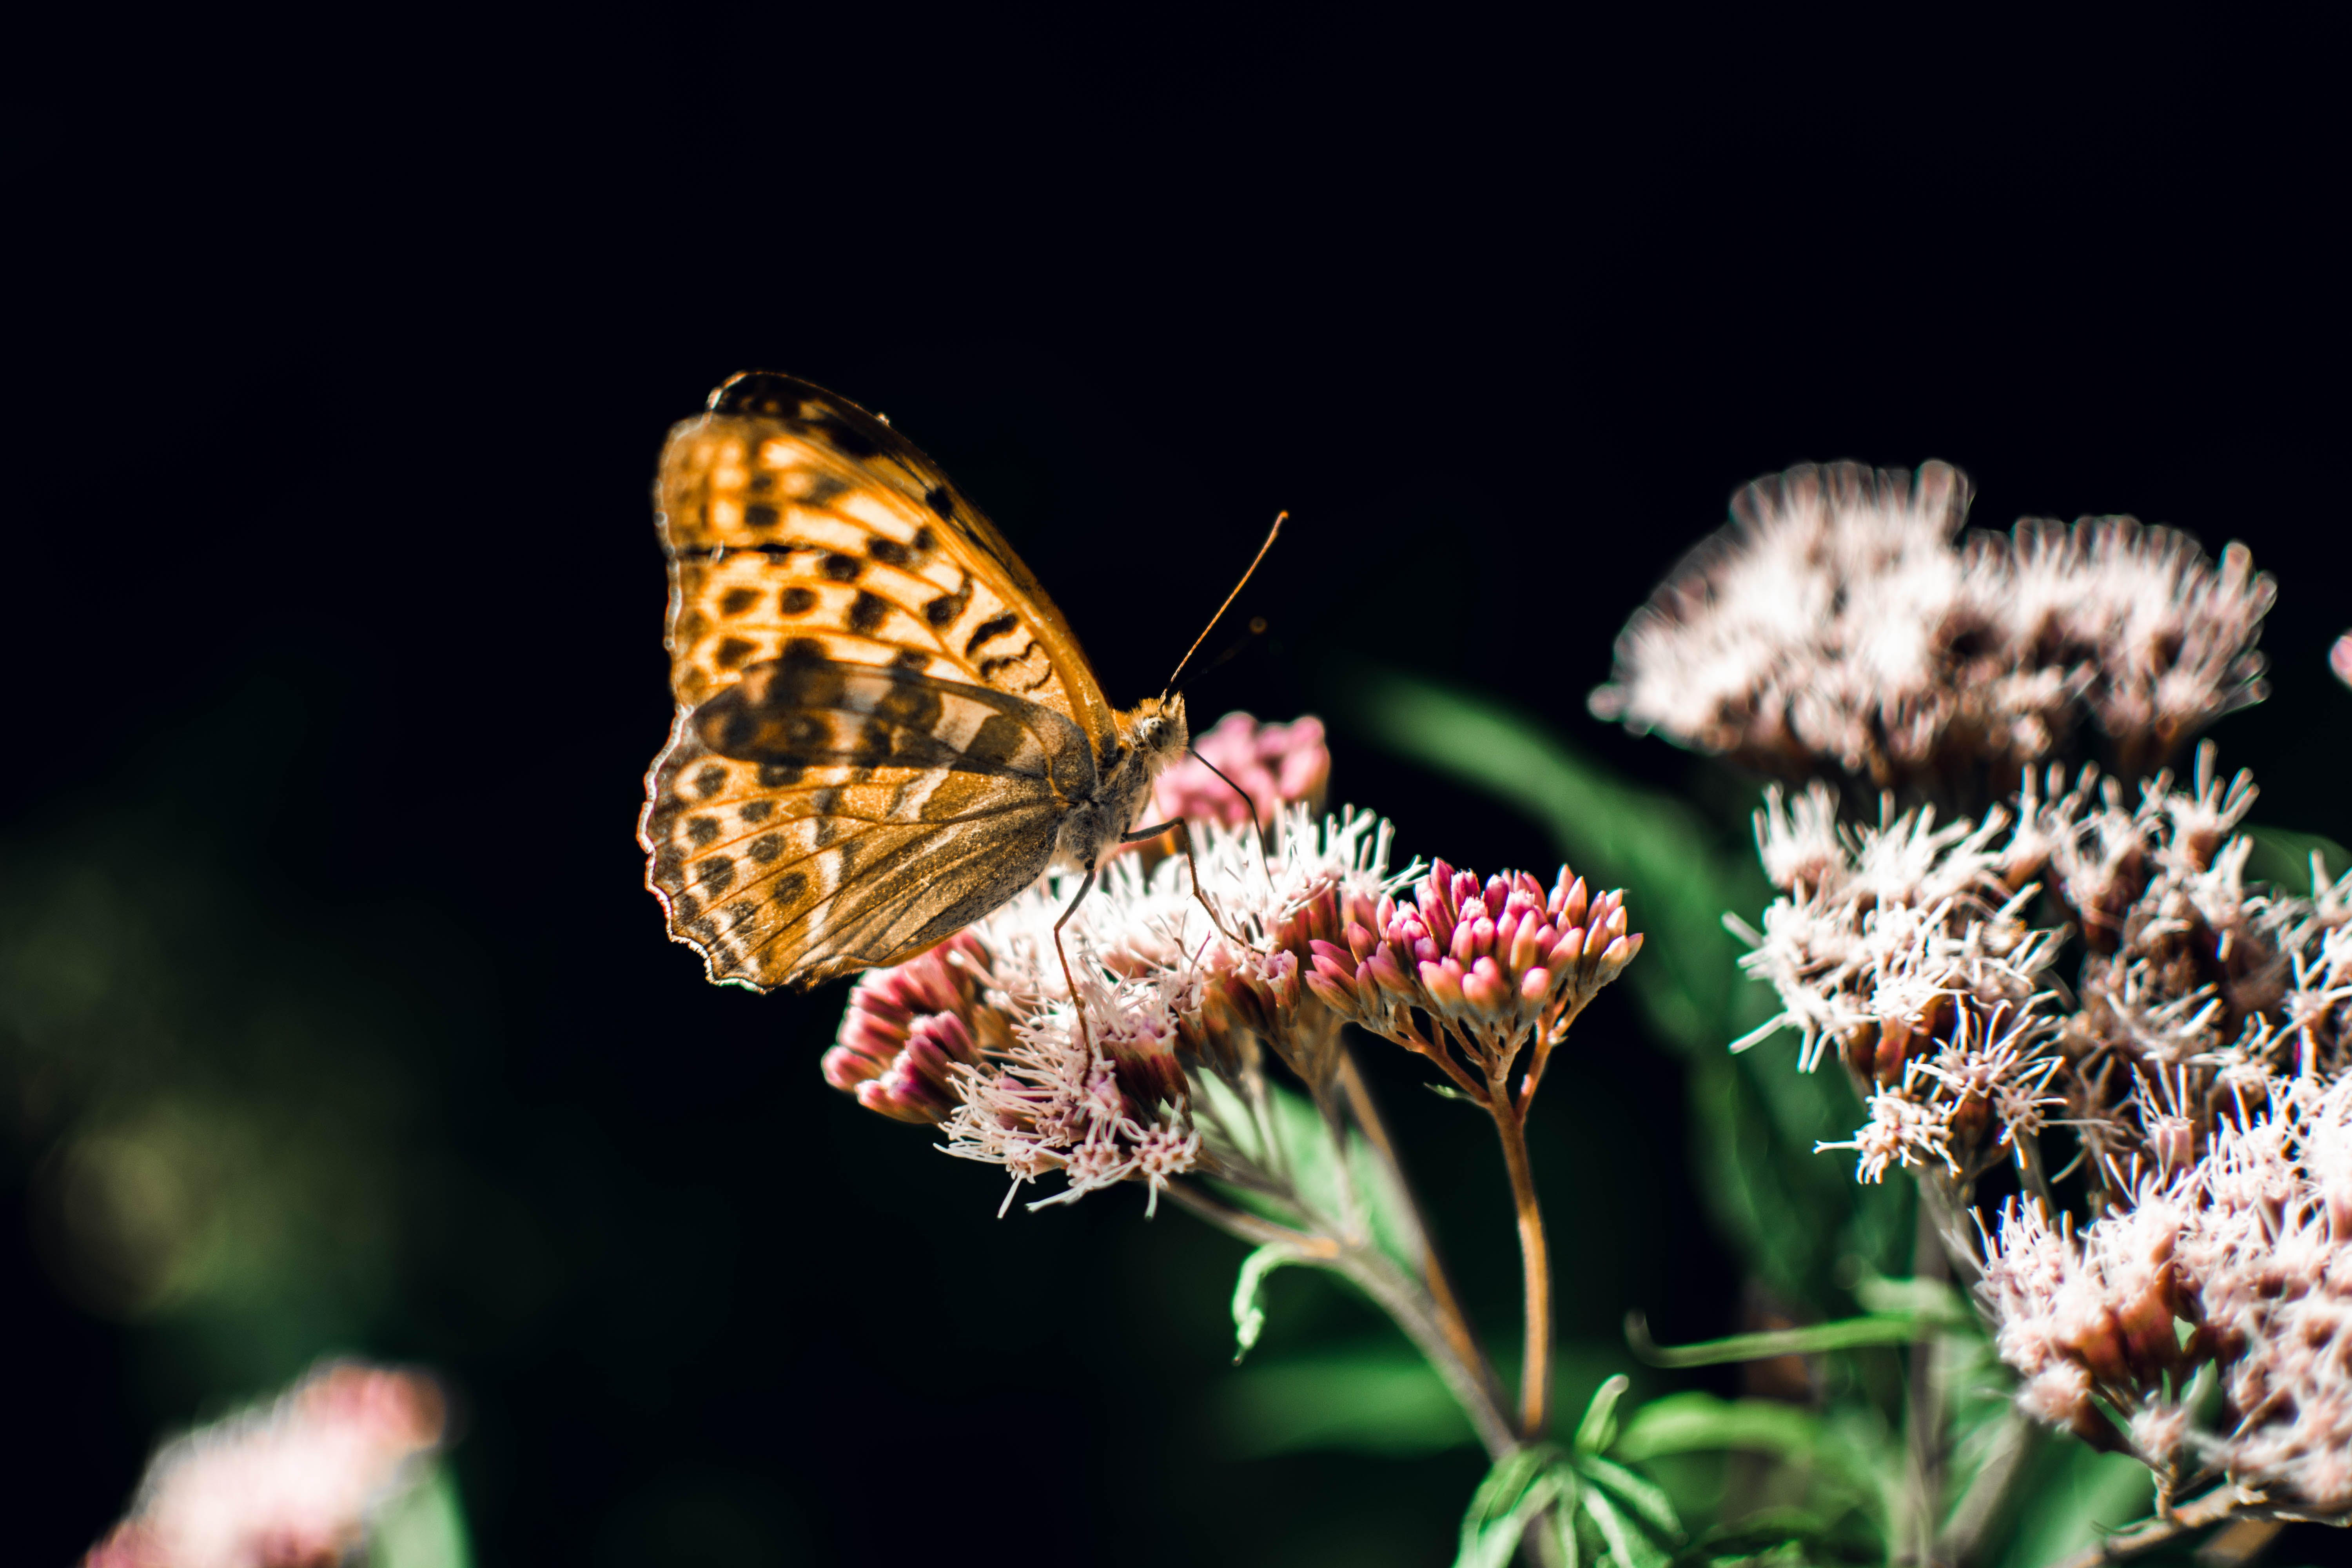 Brown Butterfly Perched on Pink Flower